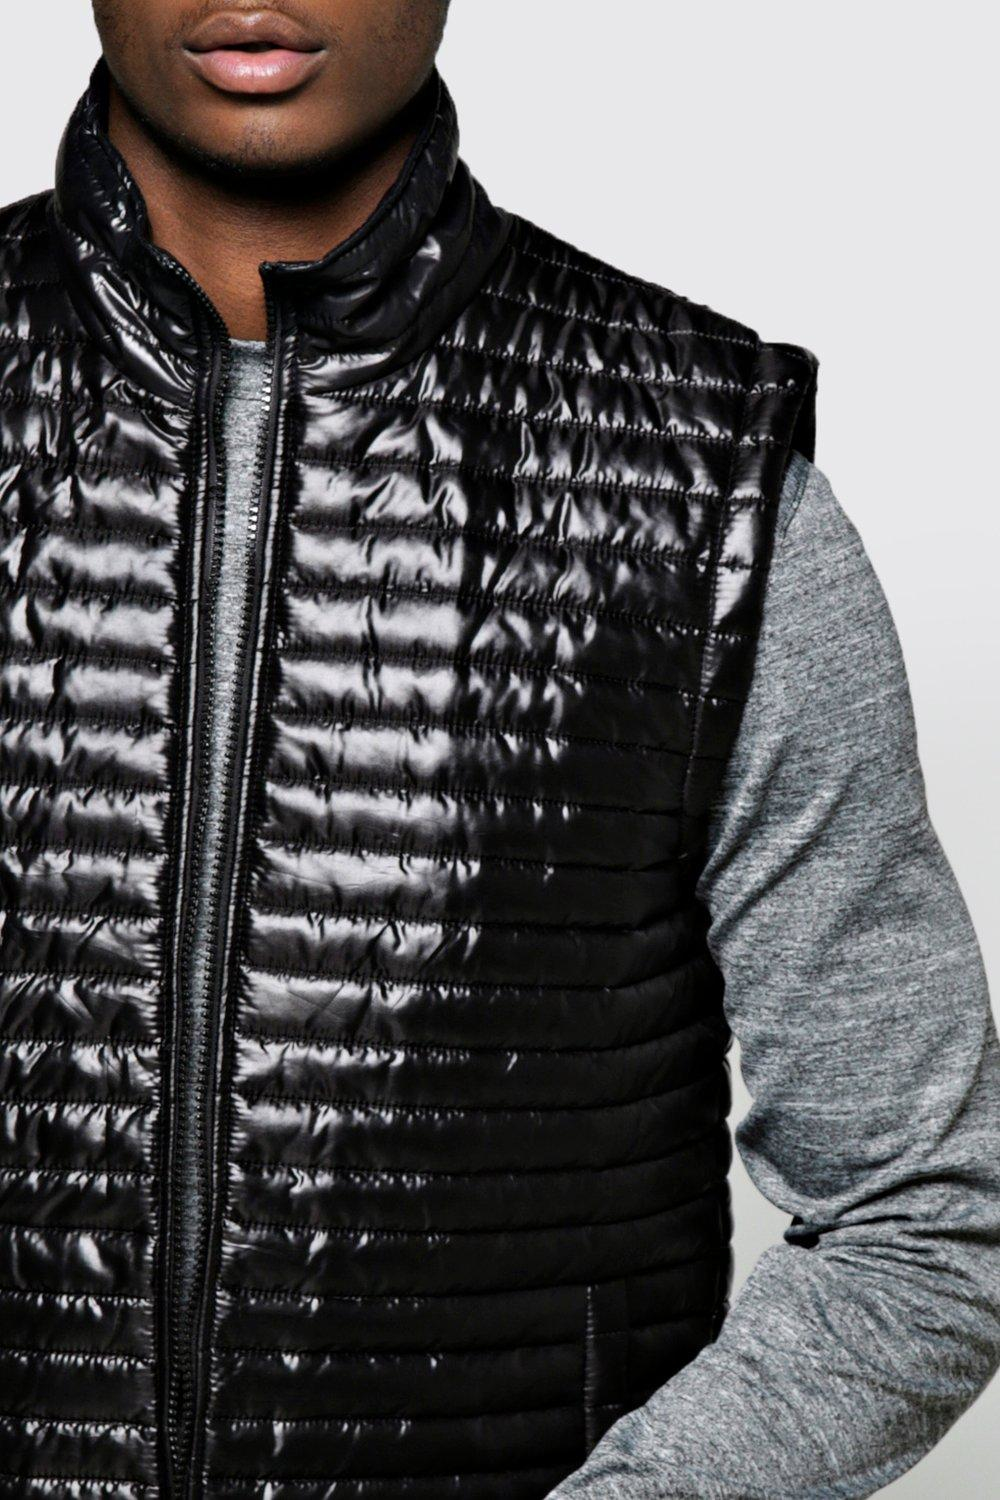 Boohoo Synthetic Padded Sports Gilet in Black for Men